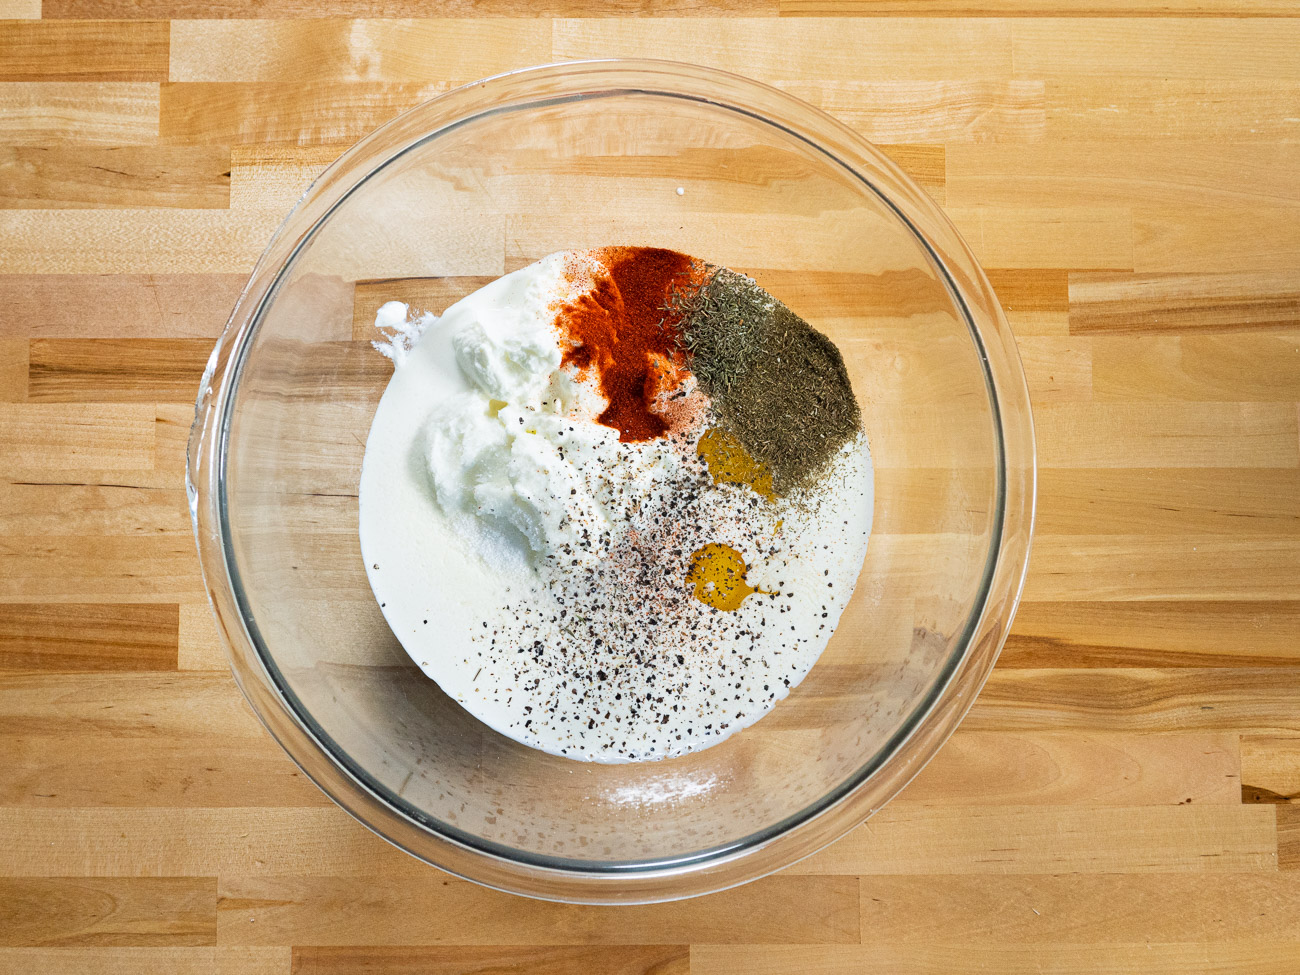 In a very large bowl whisk together cream, yogurt, eggs, melted butter, and spices.